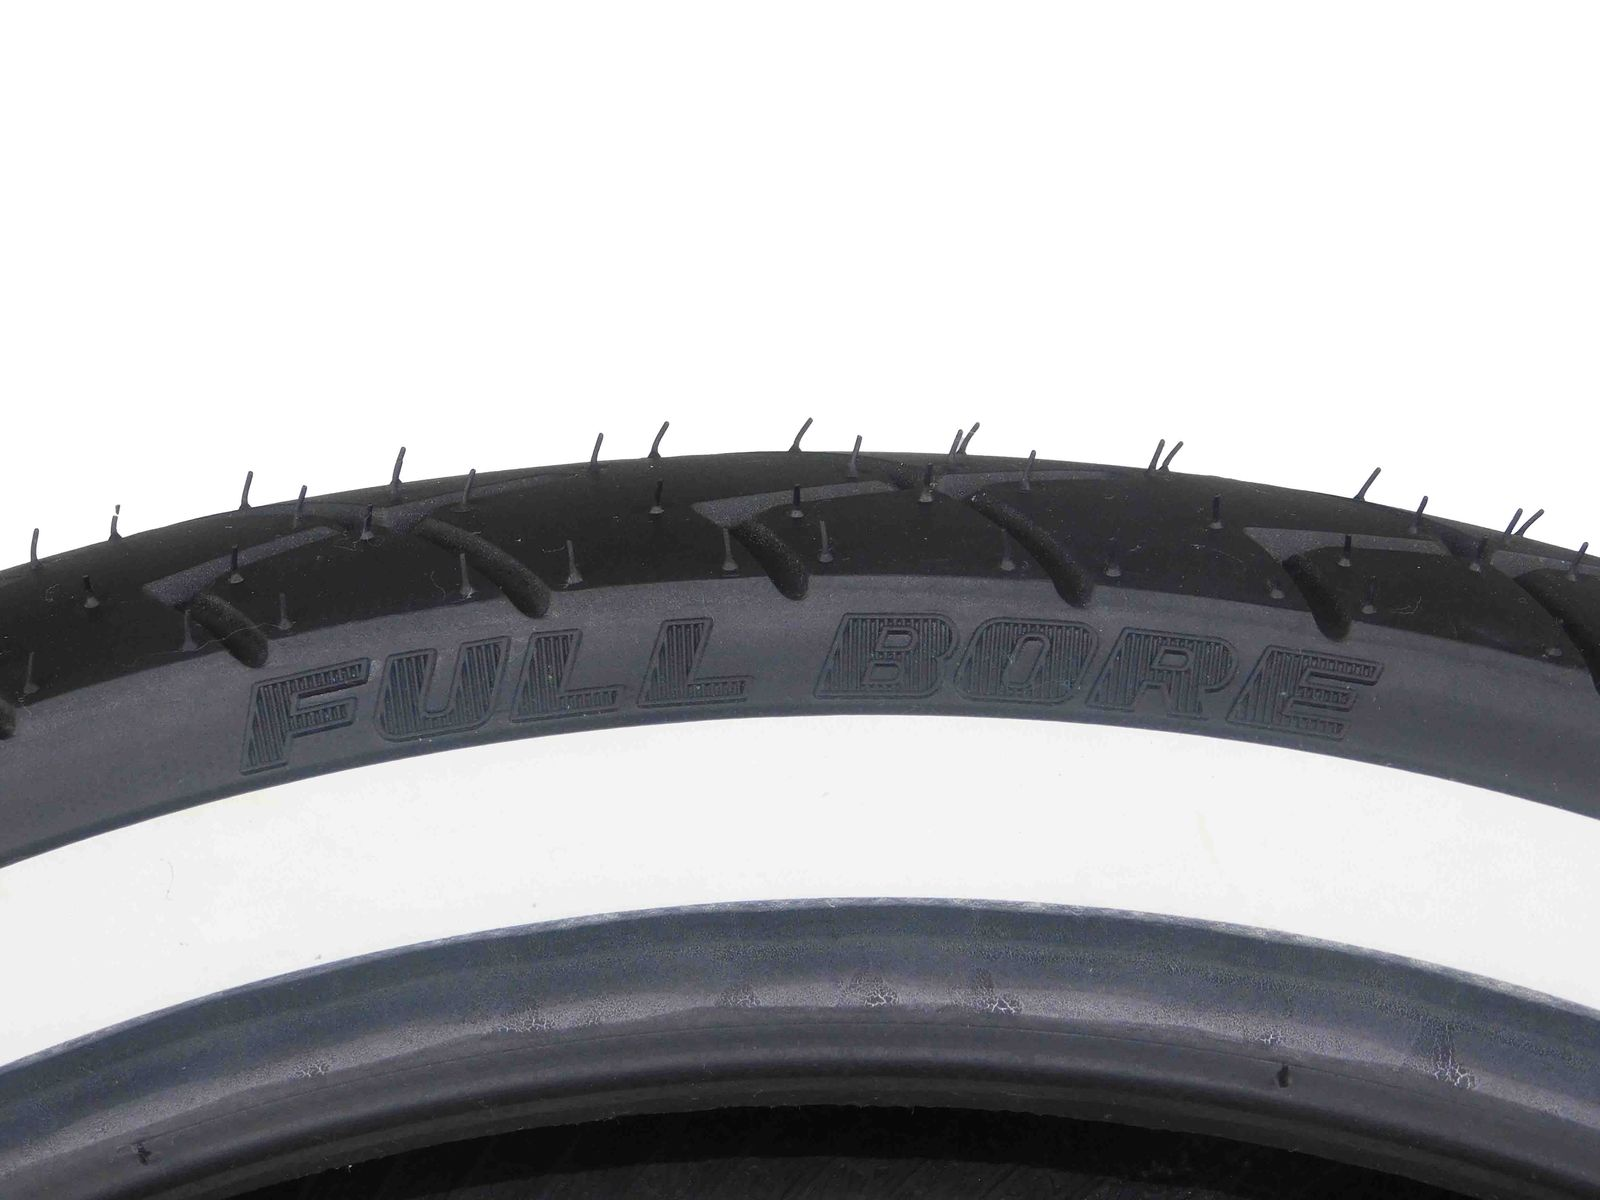 Full-Bore-100-90-19-Front-170-80-15-Rear-White-Wall-Motorcycle-Tires-image-3